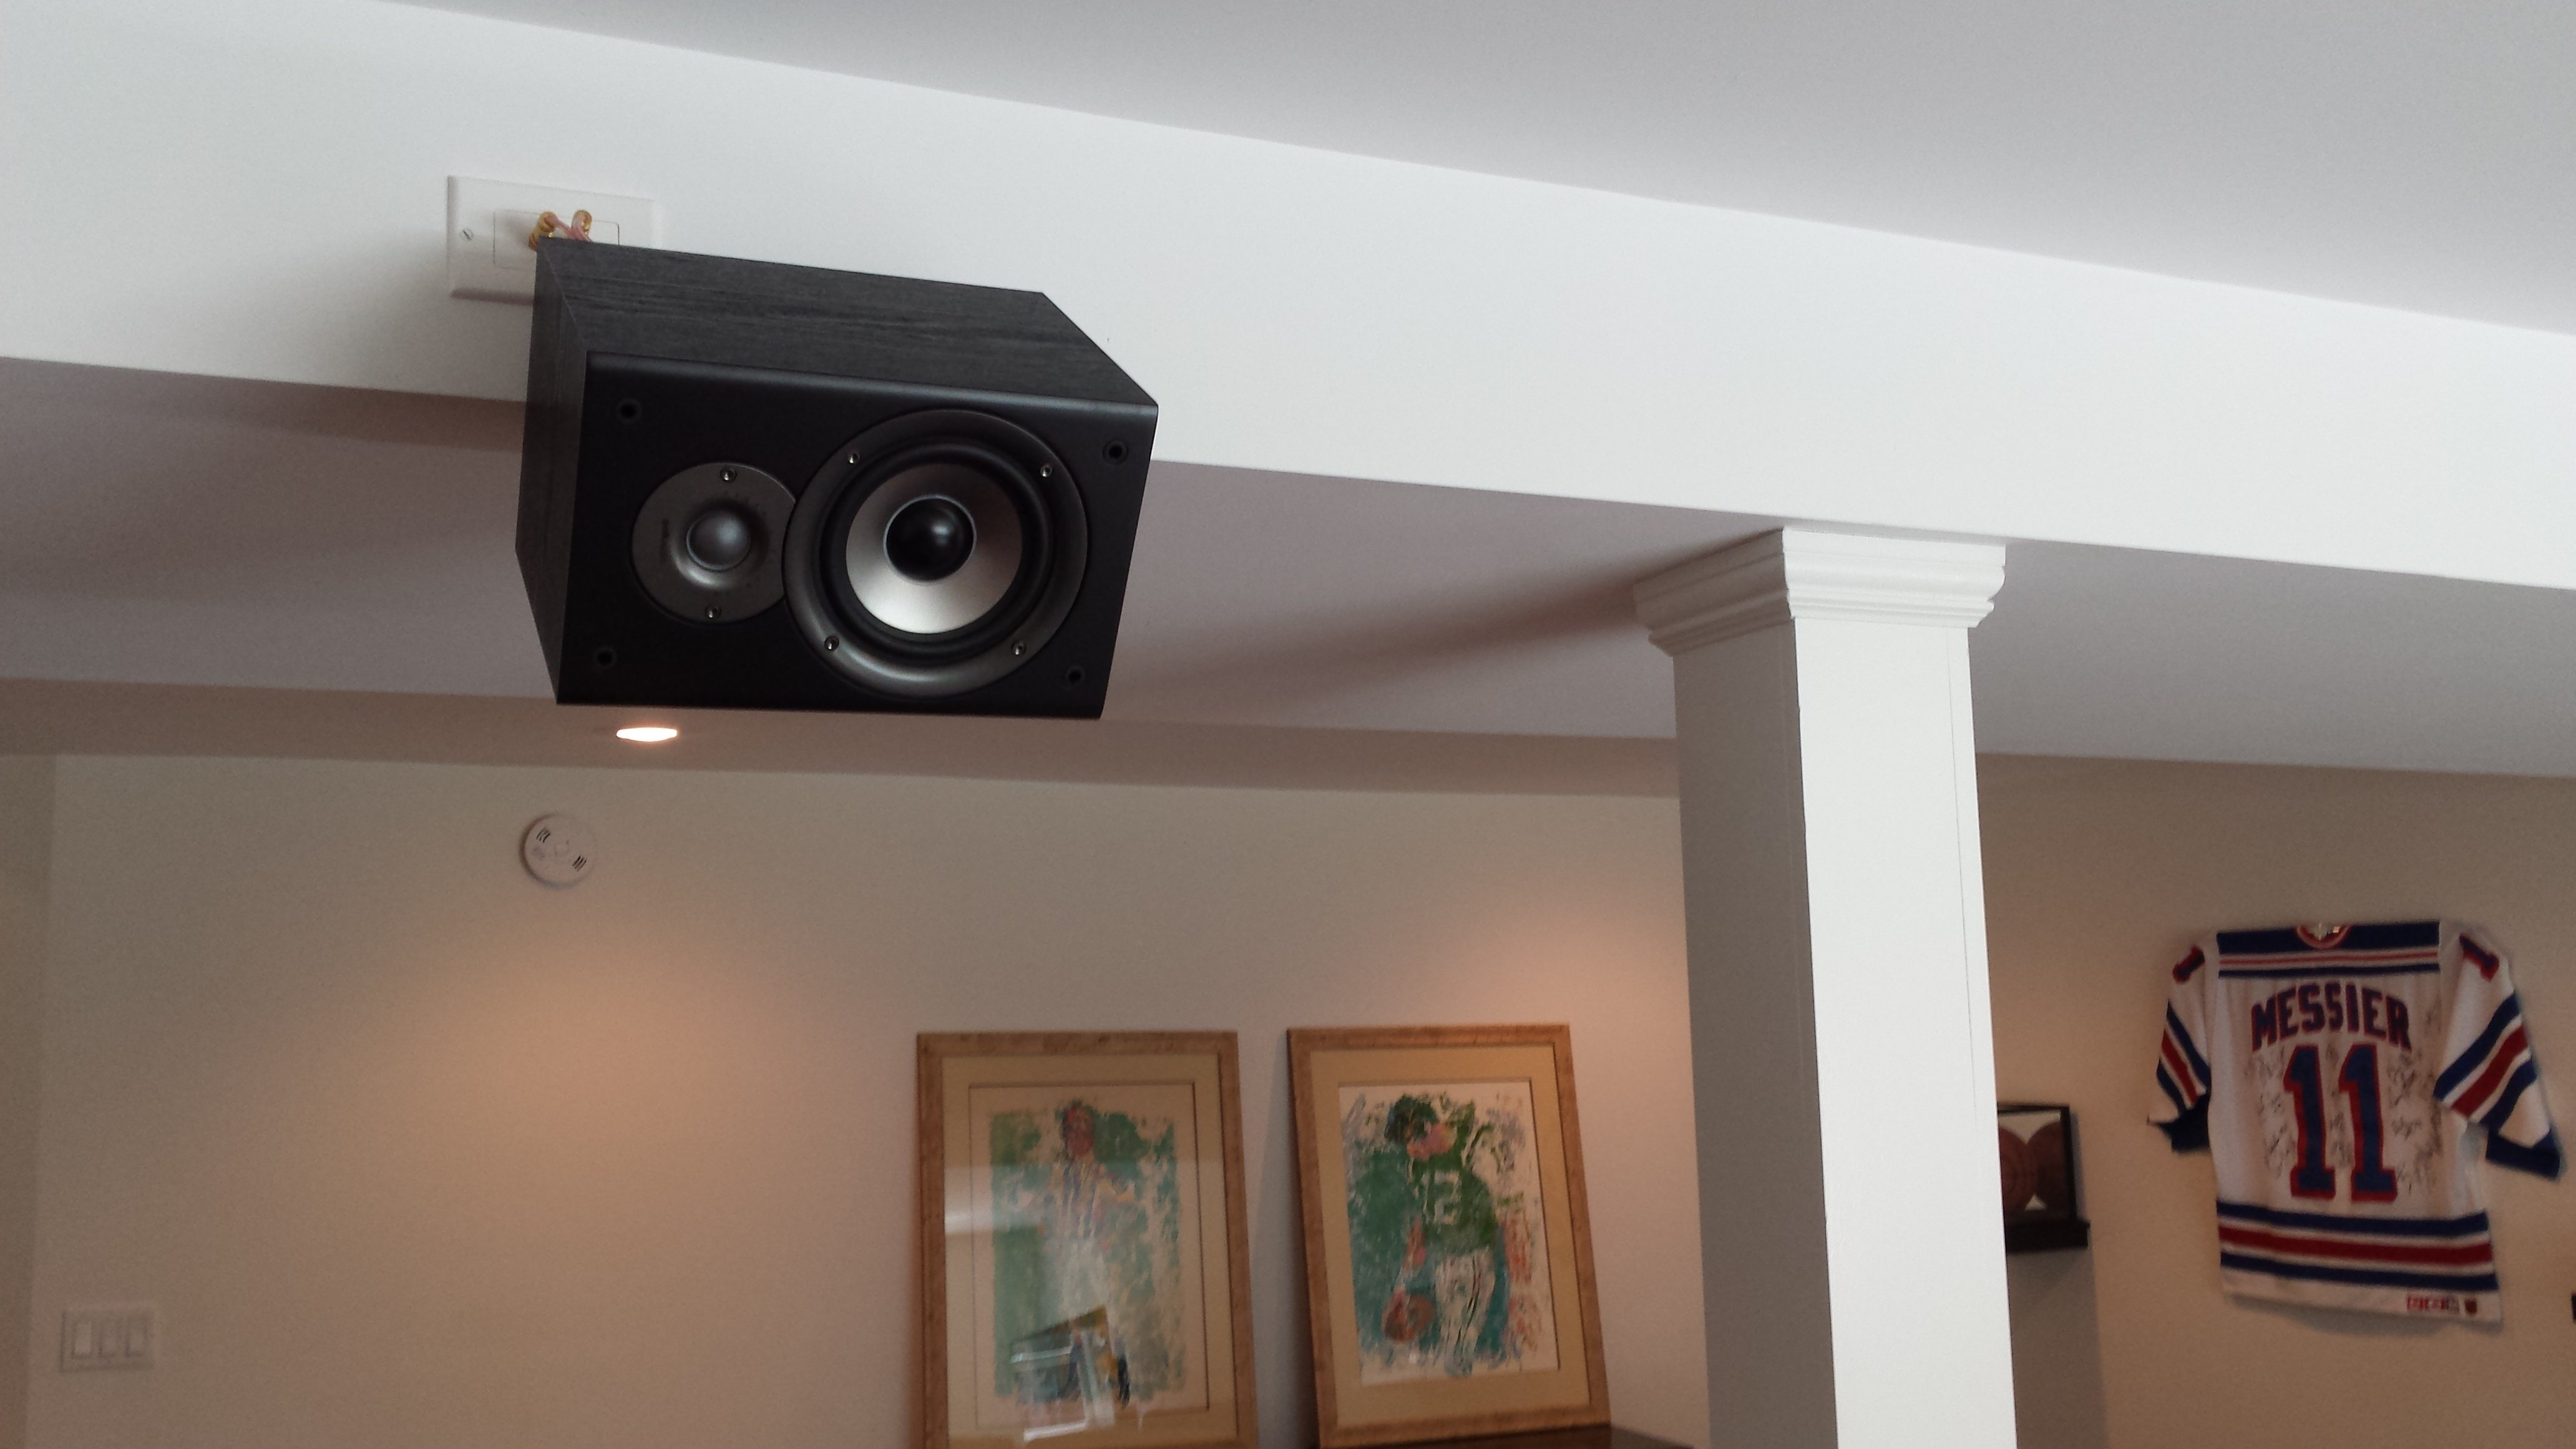 week speakers the mount jamo x perience in sound product ceiling of